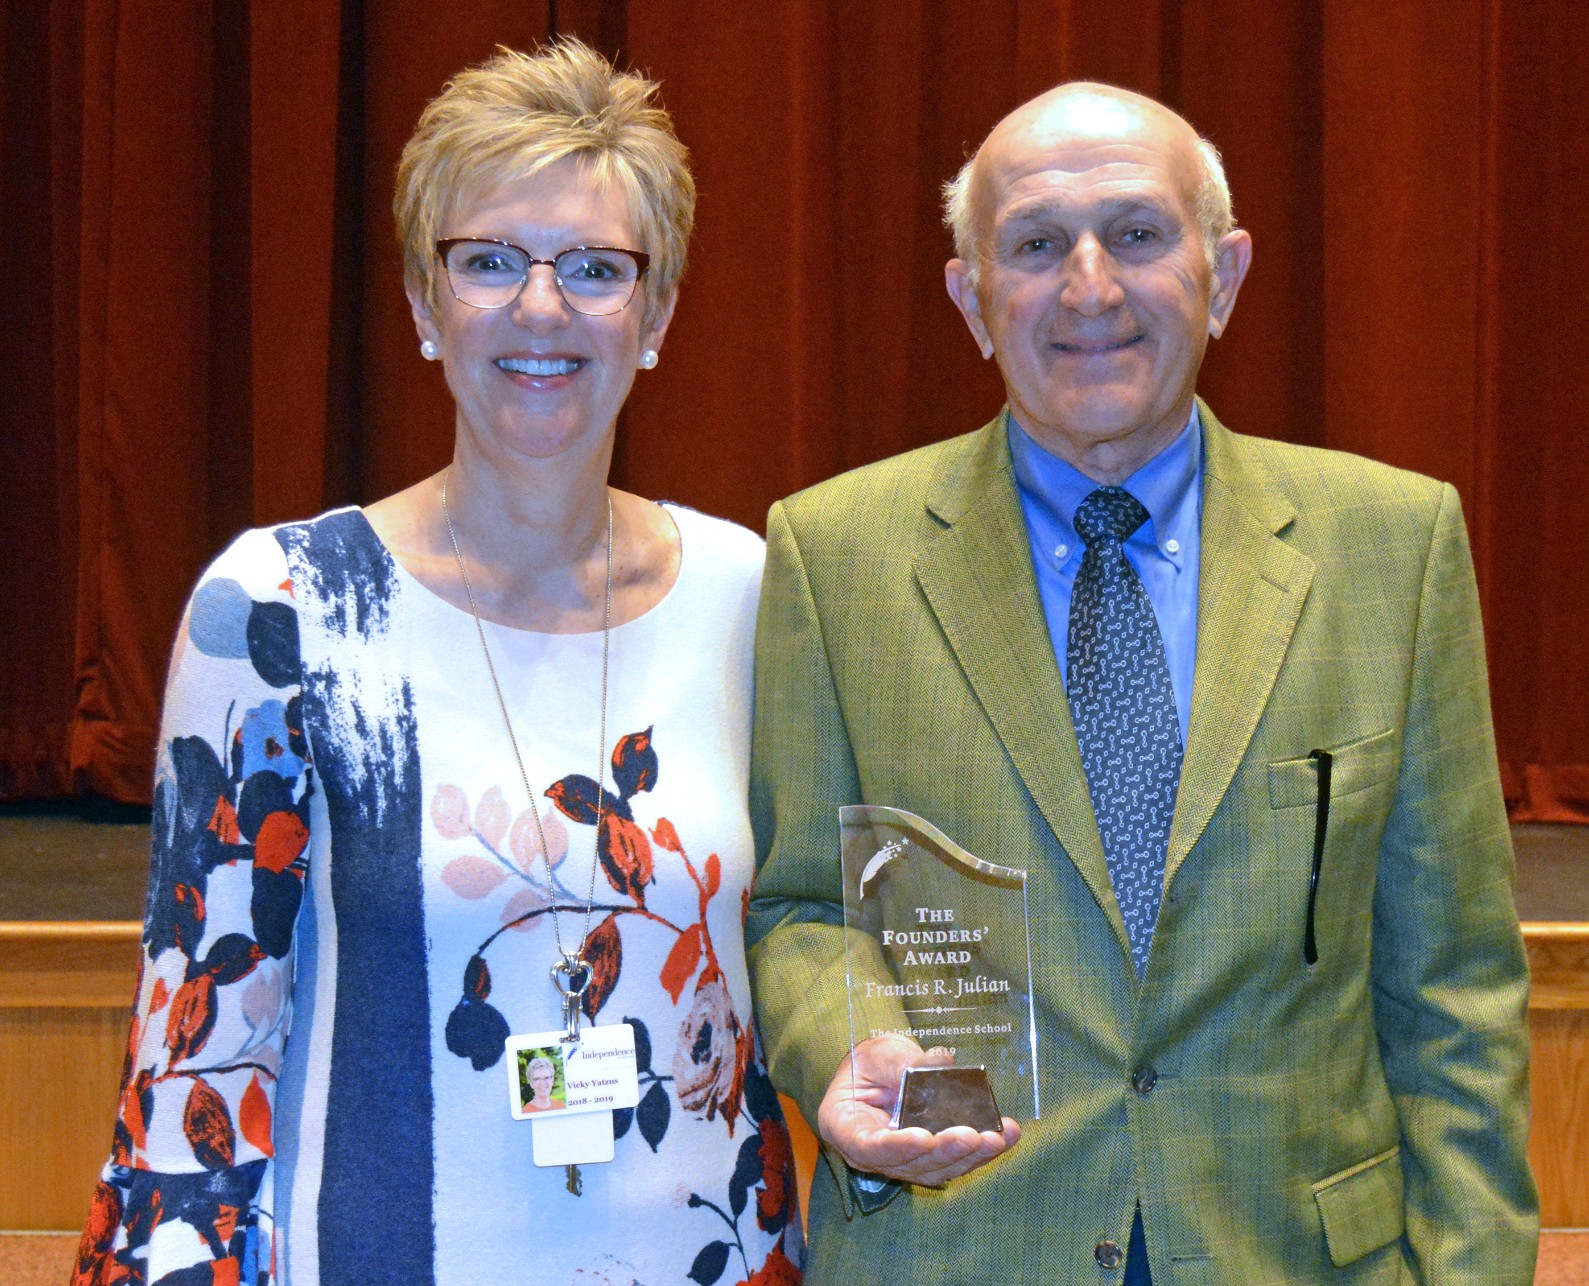 Francis Julian honored with Founders' Award